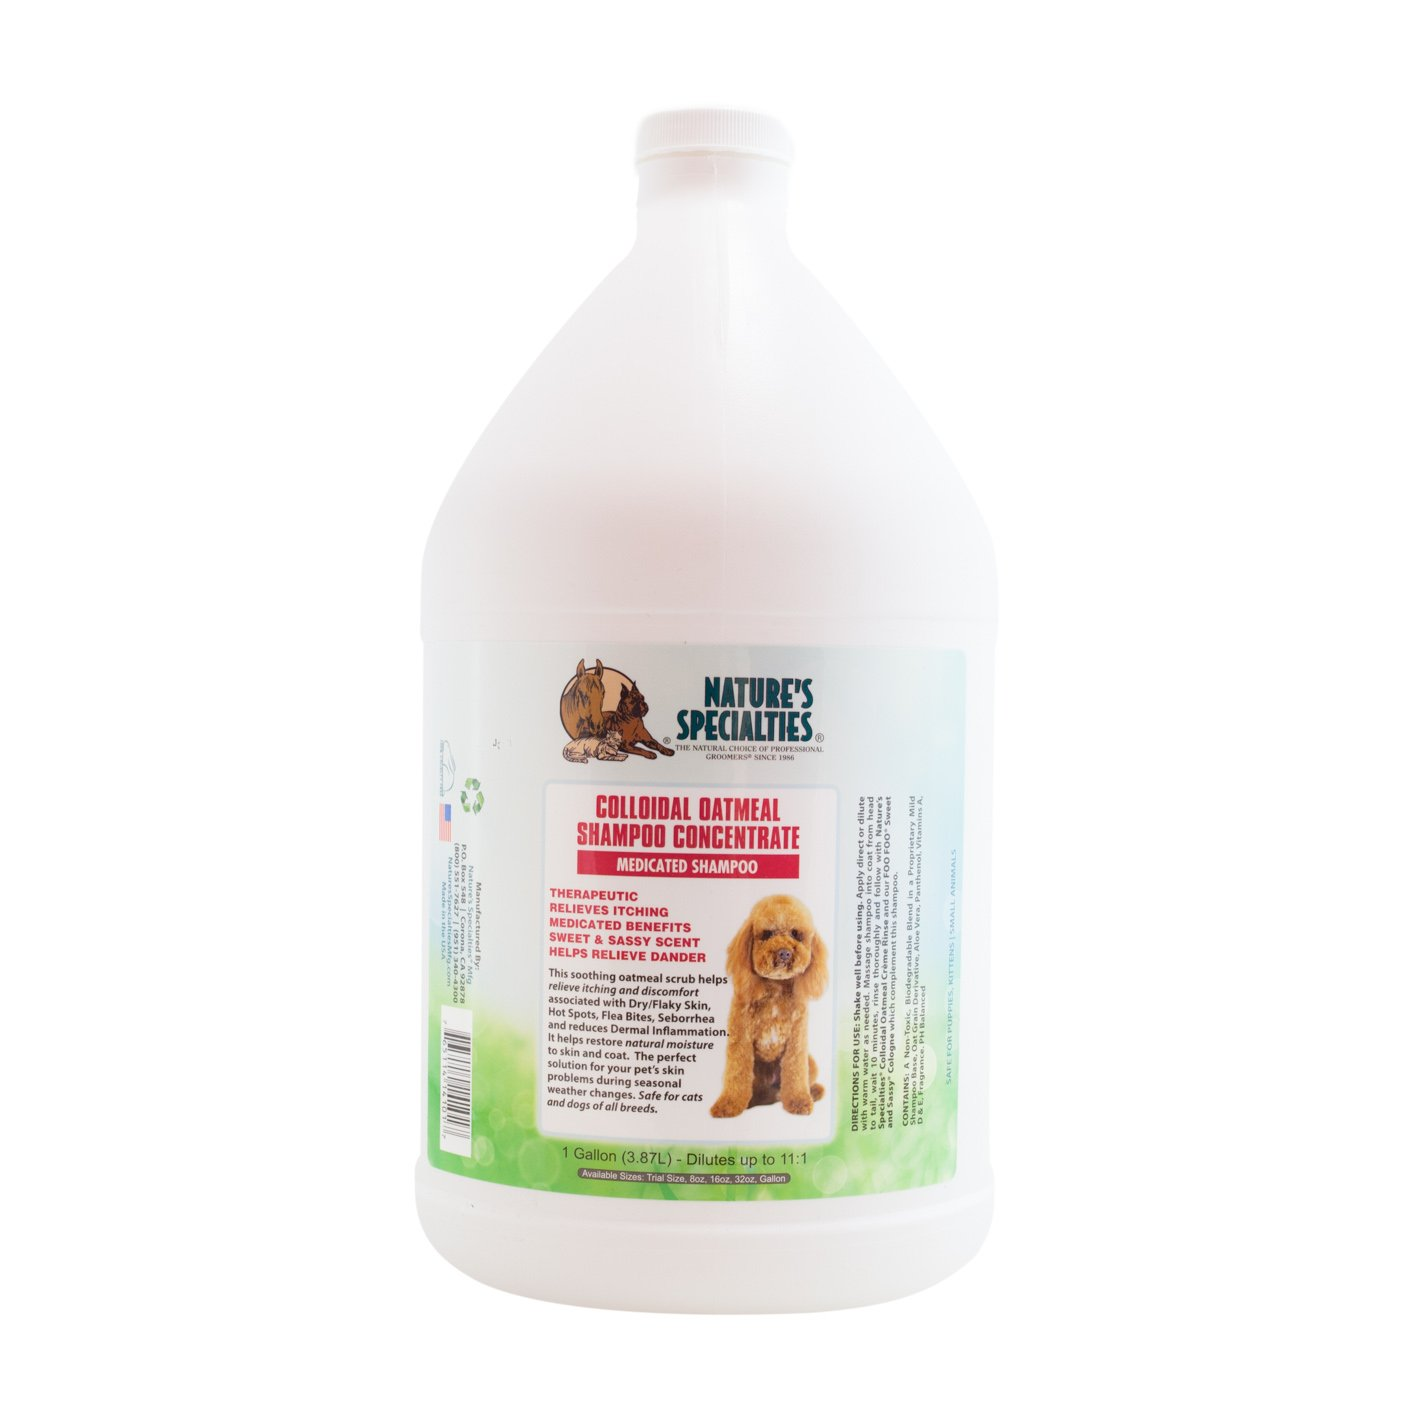 Nature's Specialties Colloidal Oatmeal Pet Shampoo by Nature's Specialties Mfg